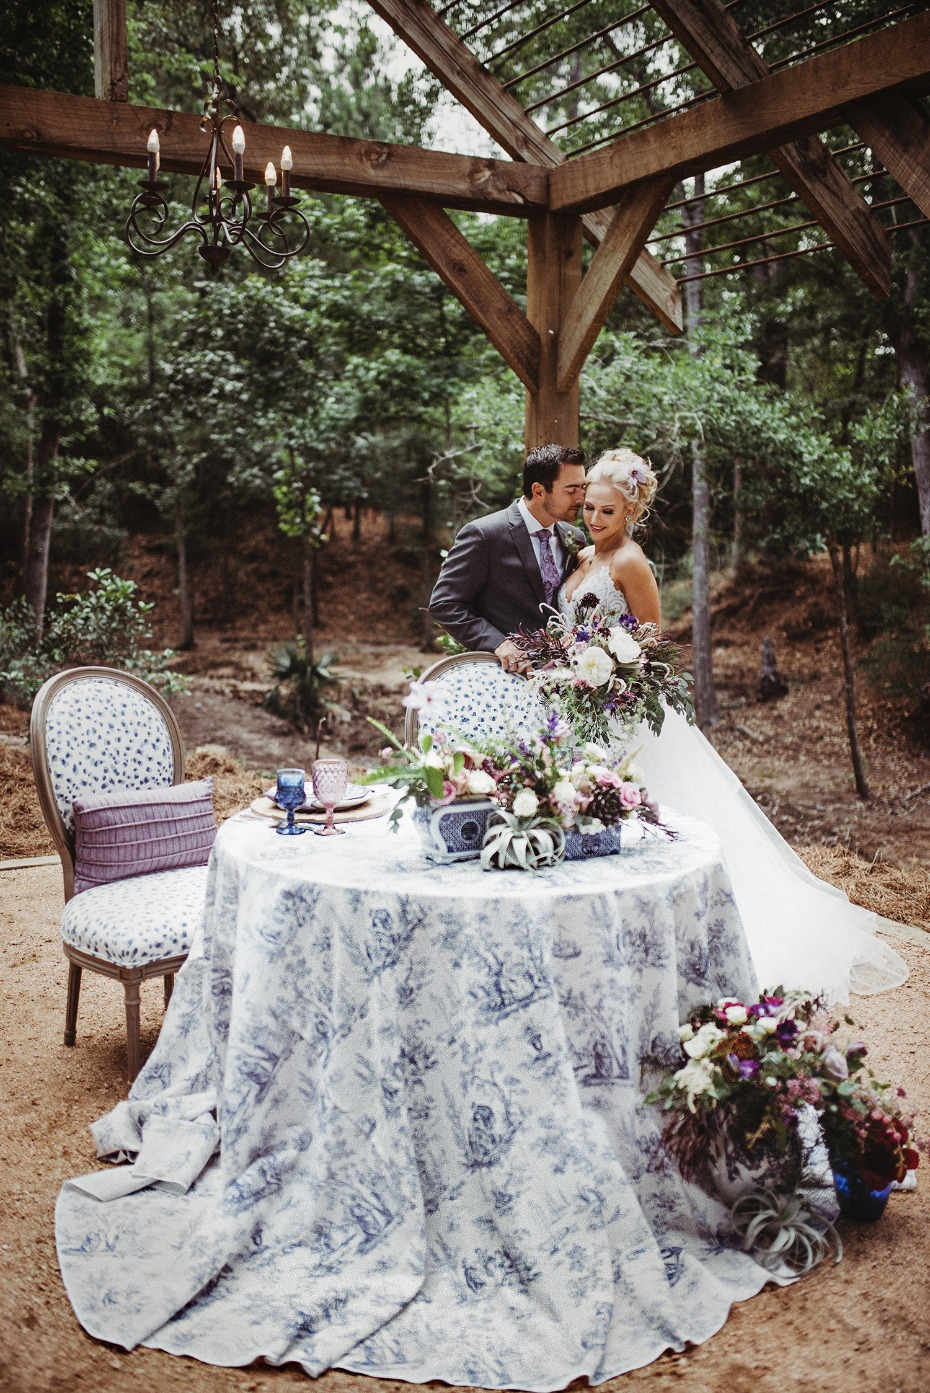 Gorgeous sweetheart table